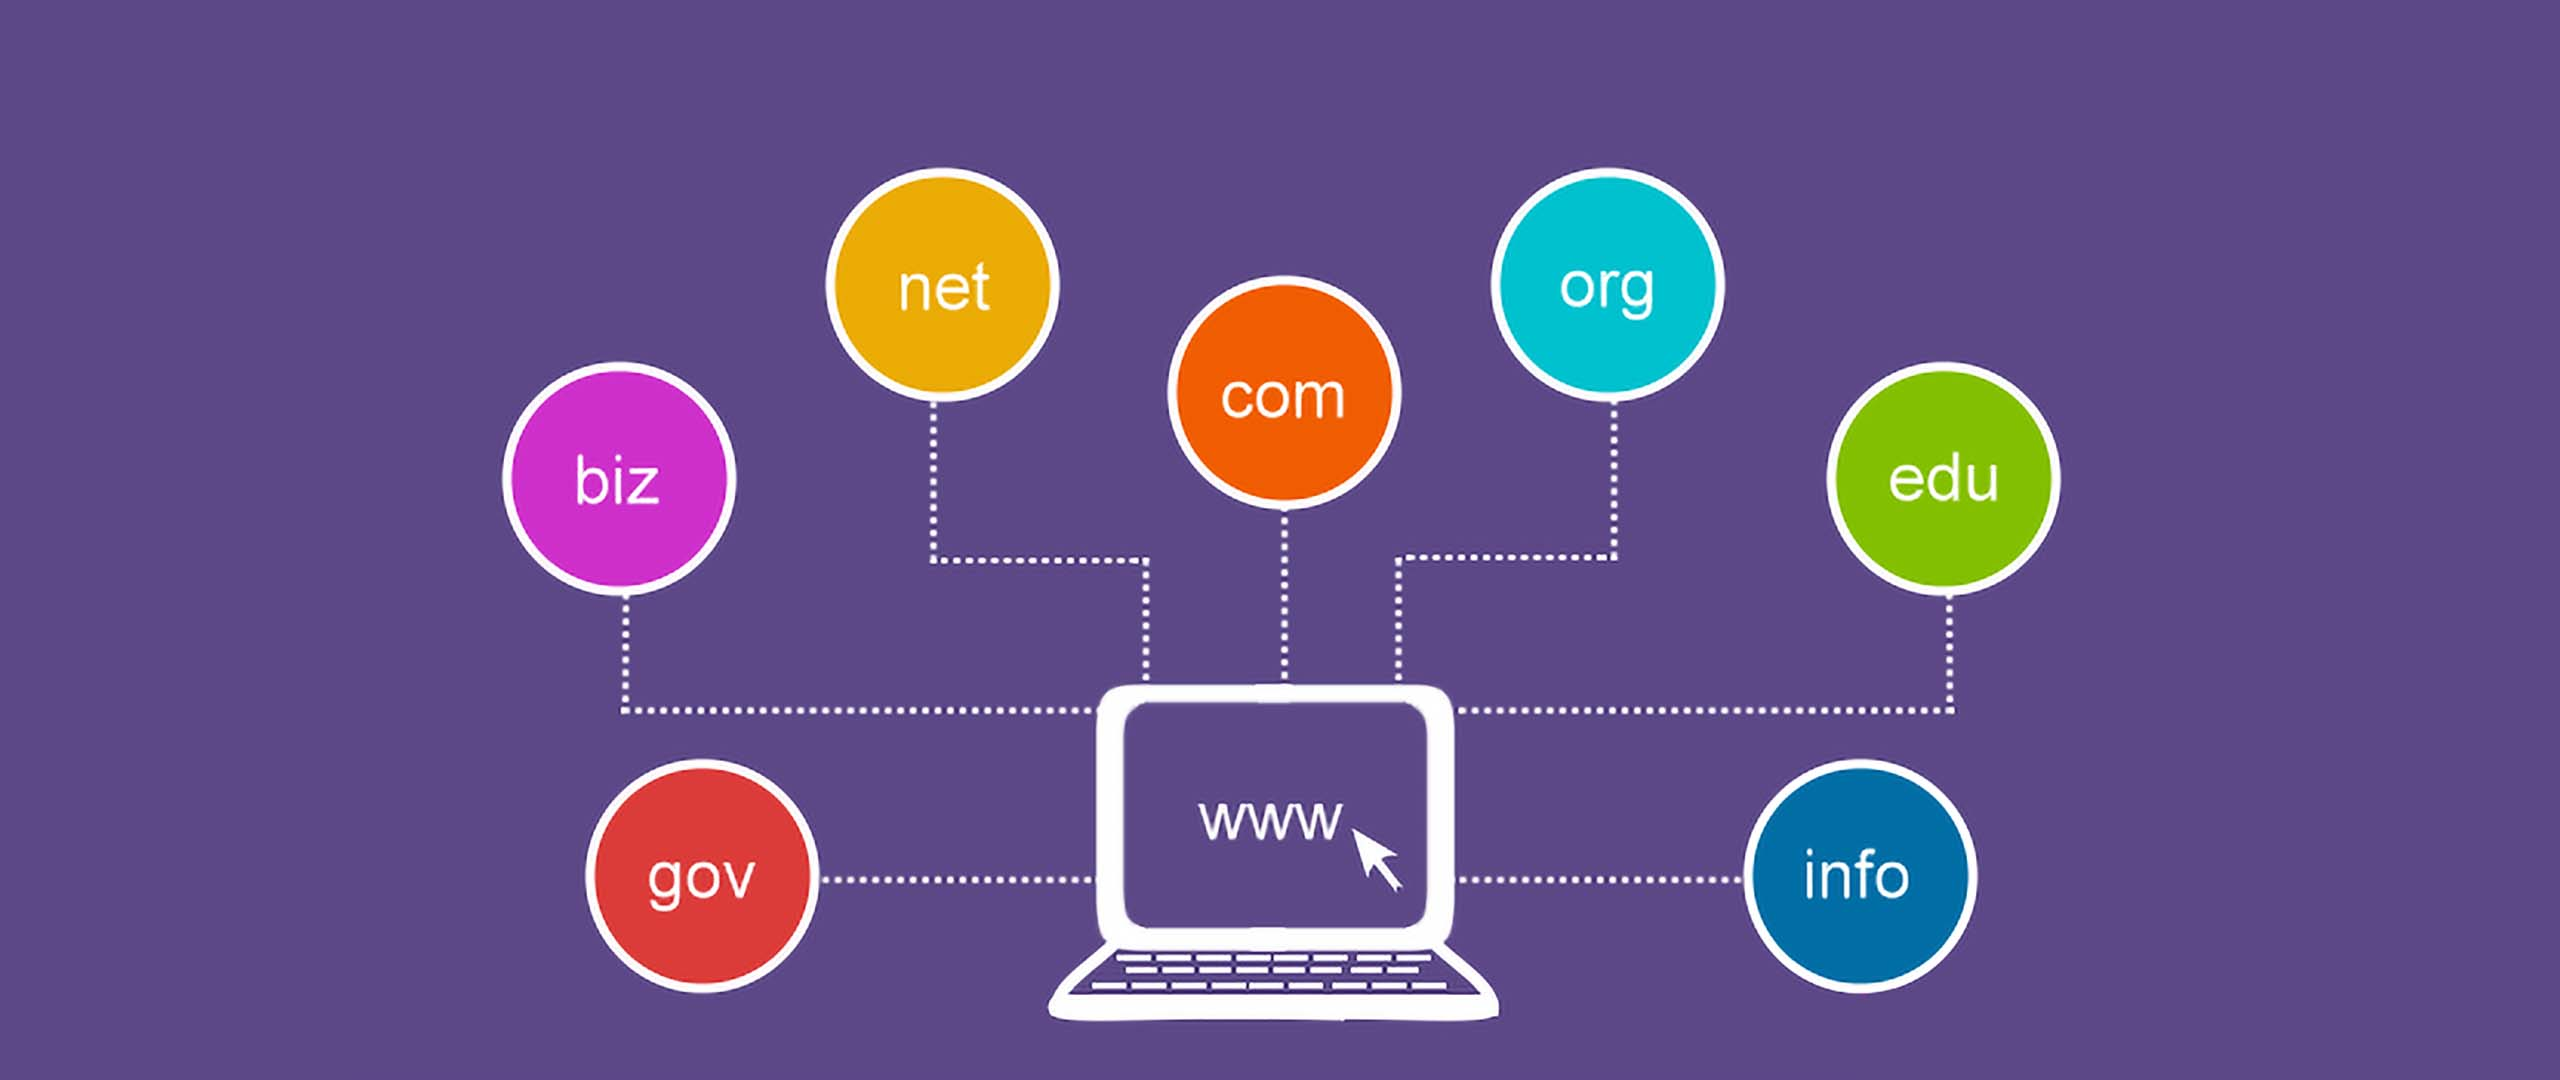 Three Important Tips to Follow When Choosing a Startup Domain Name